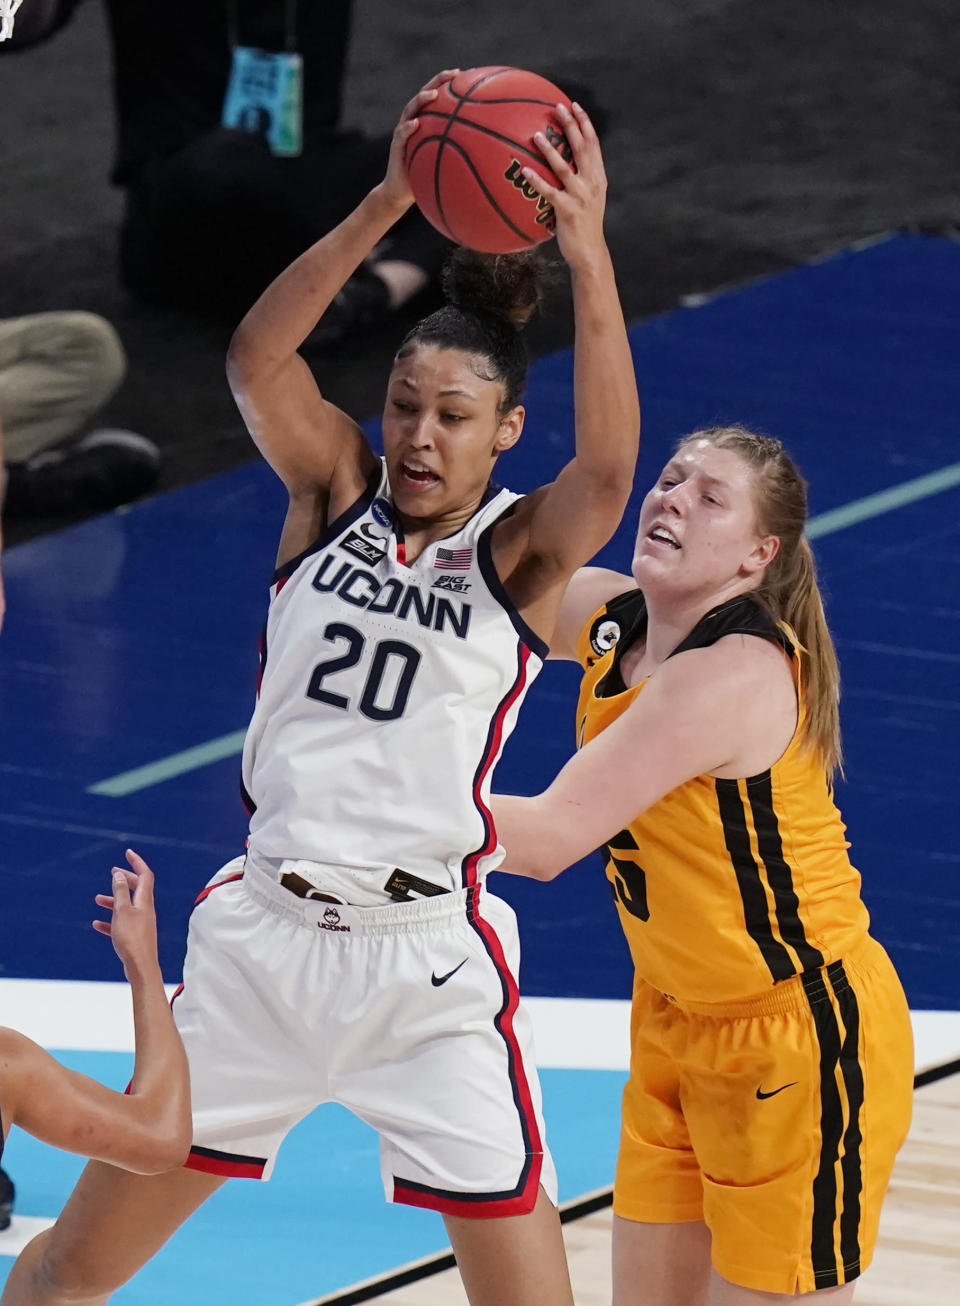 UConn forward Olivia Nelson-Ododa (20) pulls down a rebound over Iowa forward Monika Czinano (25) during the first half of a college basketball game in the Sweet Sixteen round of the women's NCAA tournament at the Alamodome in San Antonio, Saturday, March 27, 2021. (AP Photo/Eric Gay)